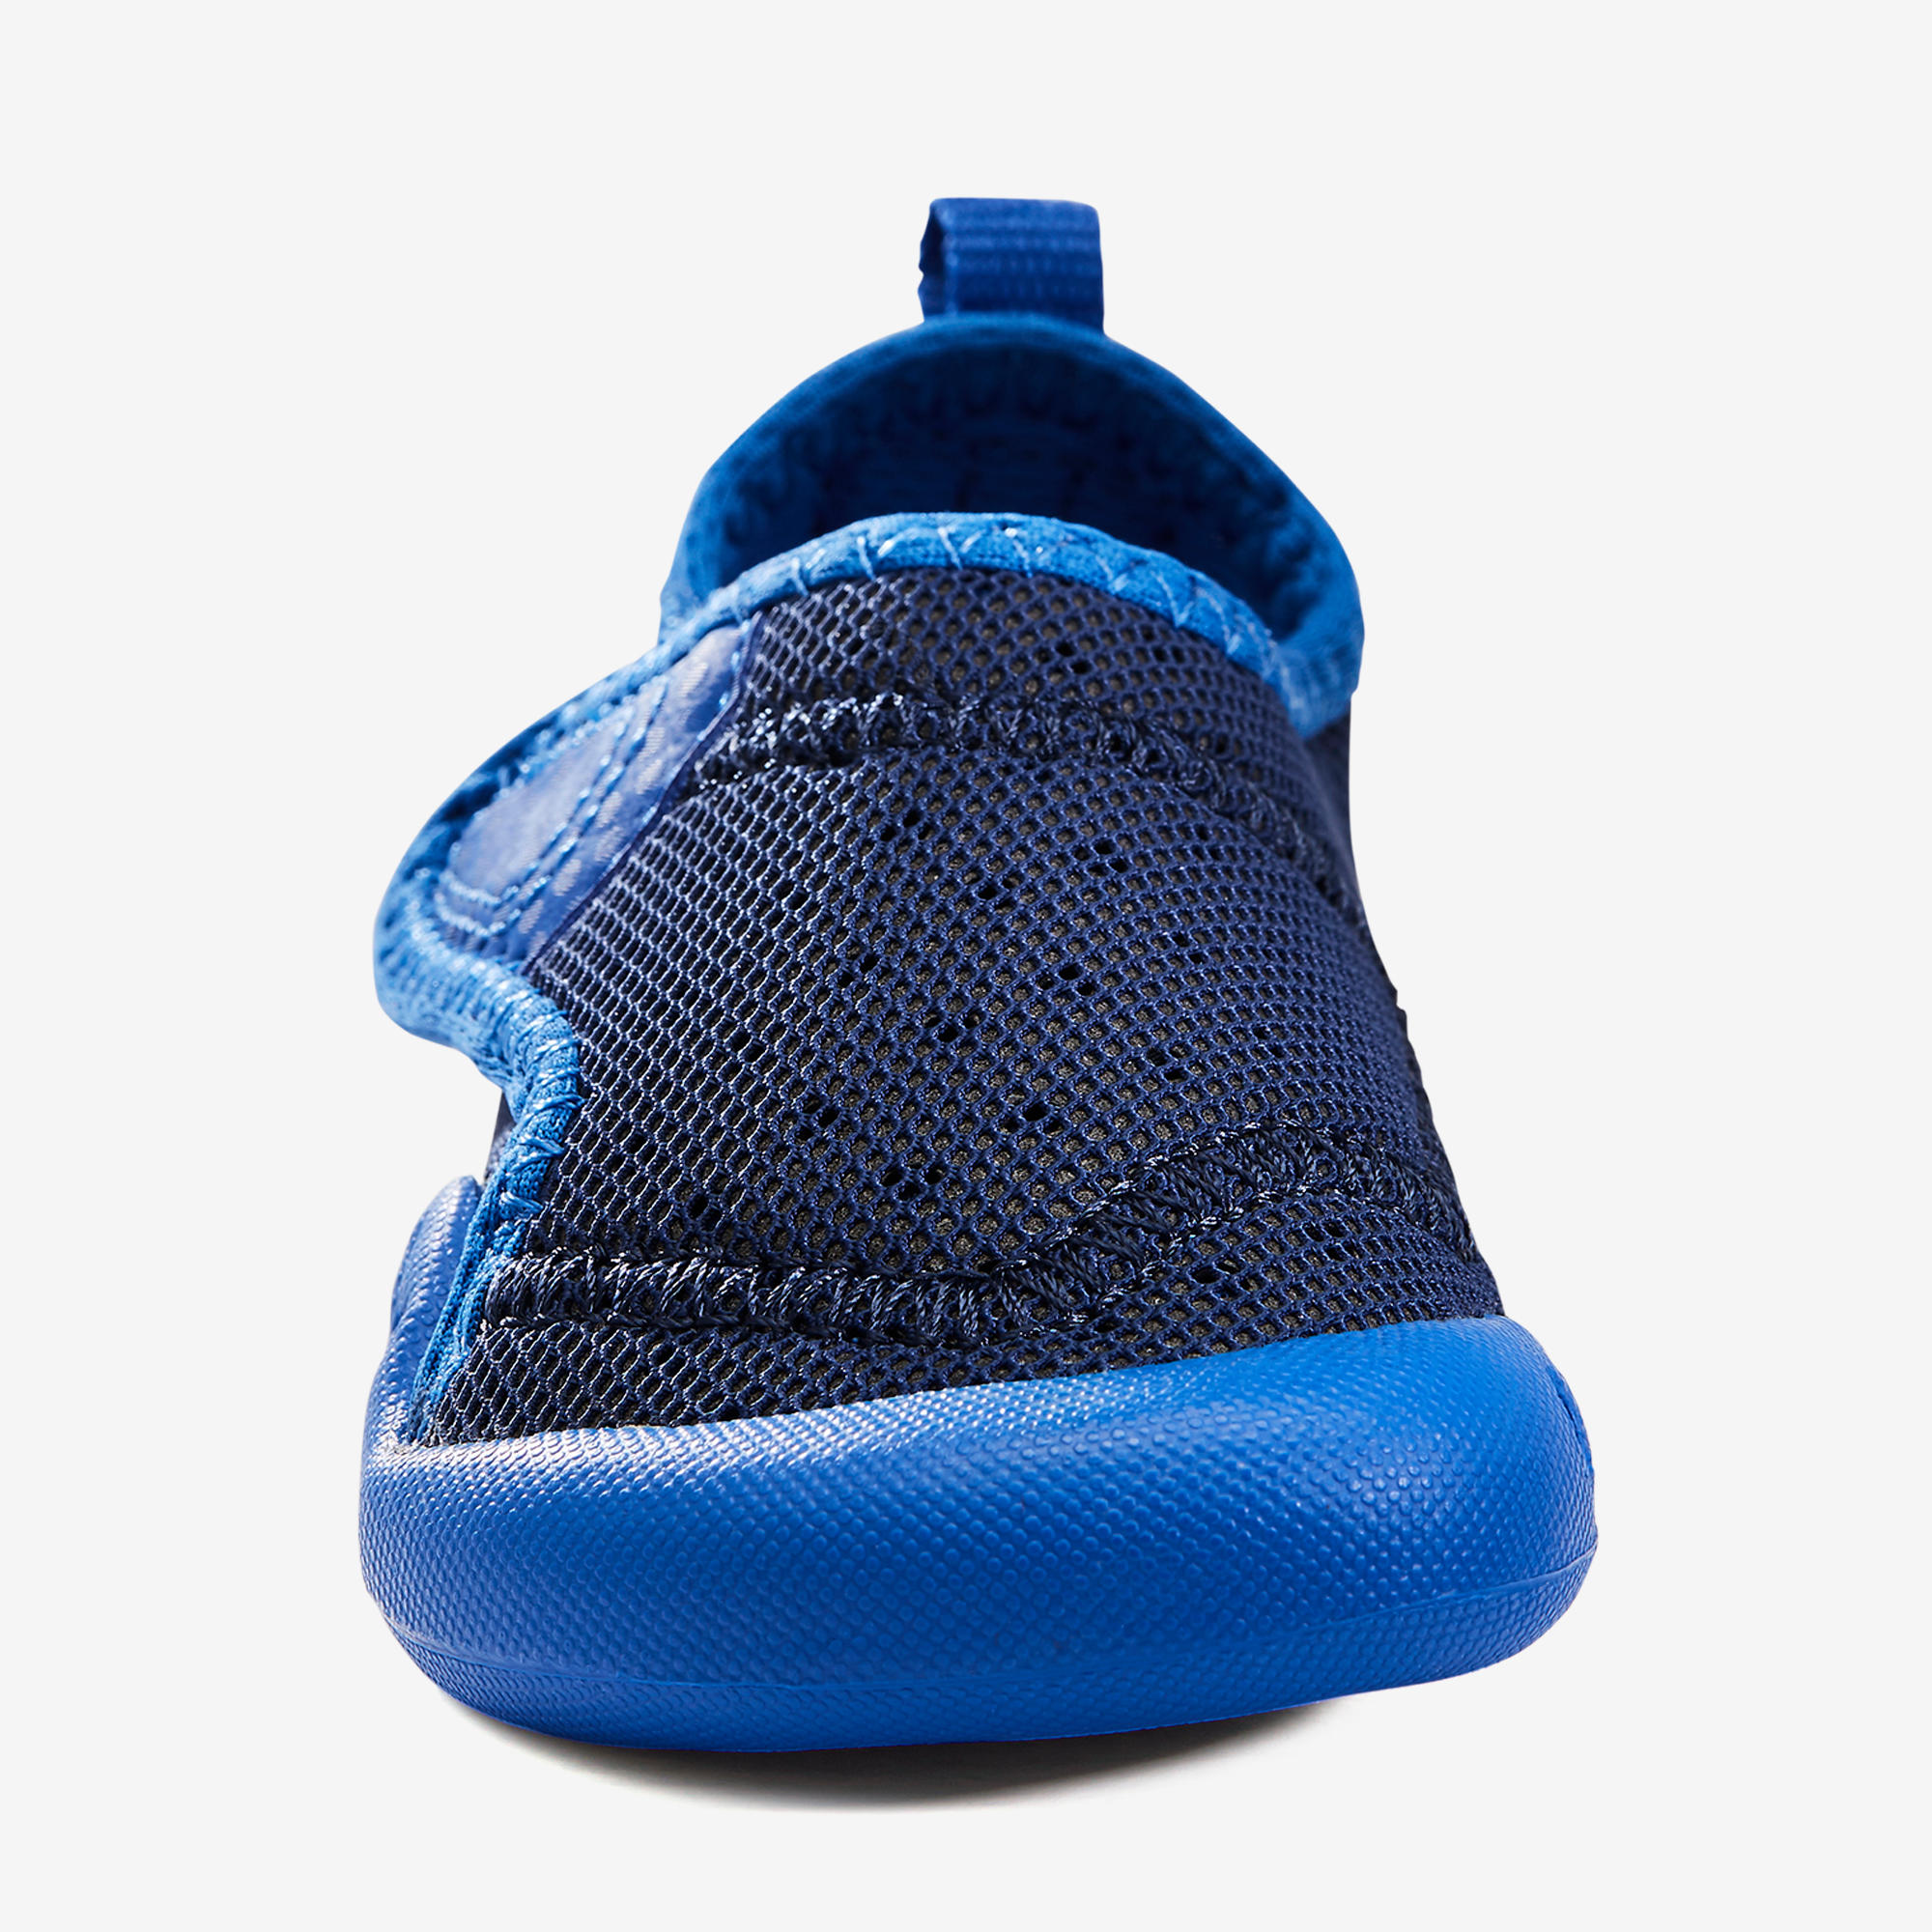 500 Babylight Gym Shoes - Blue